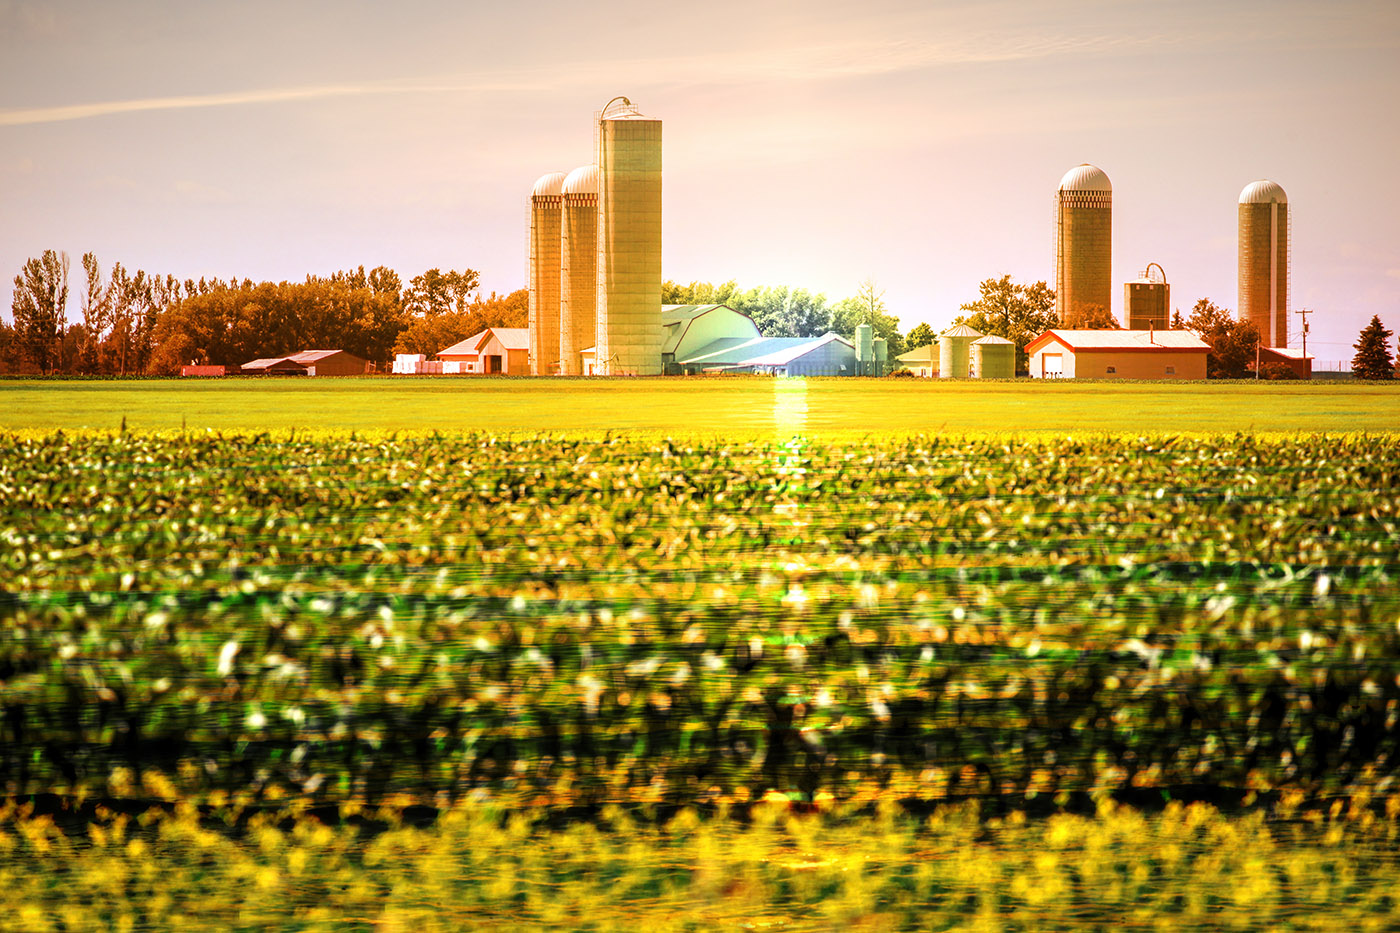 Modern Farmland and Agriculture Real Estate - Colorful Stock Photos